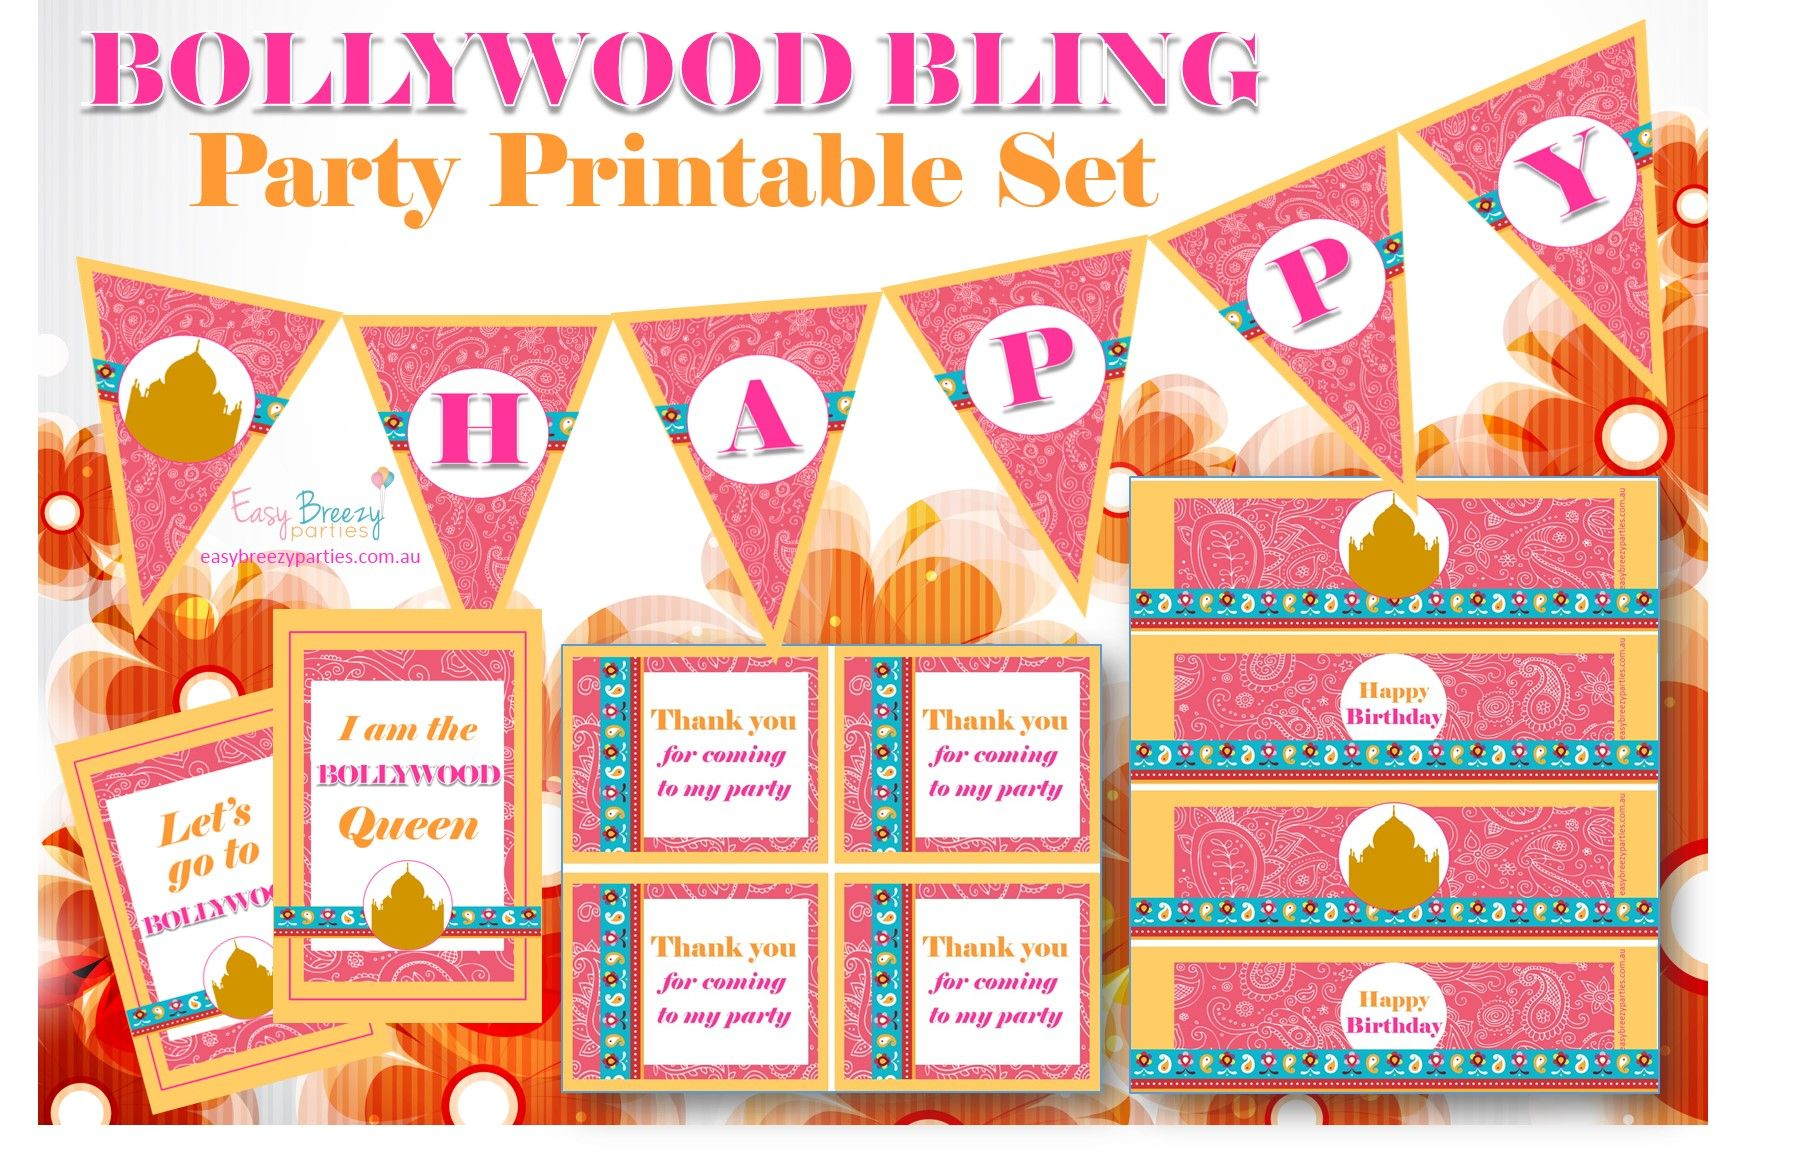 Bollywood Bling Printable Party Pack - Kids party invitation, bag ...